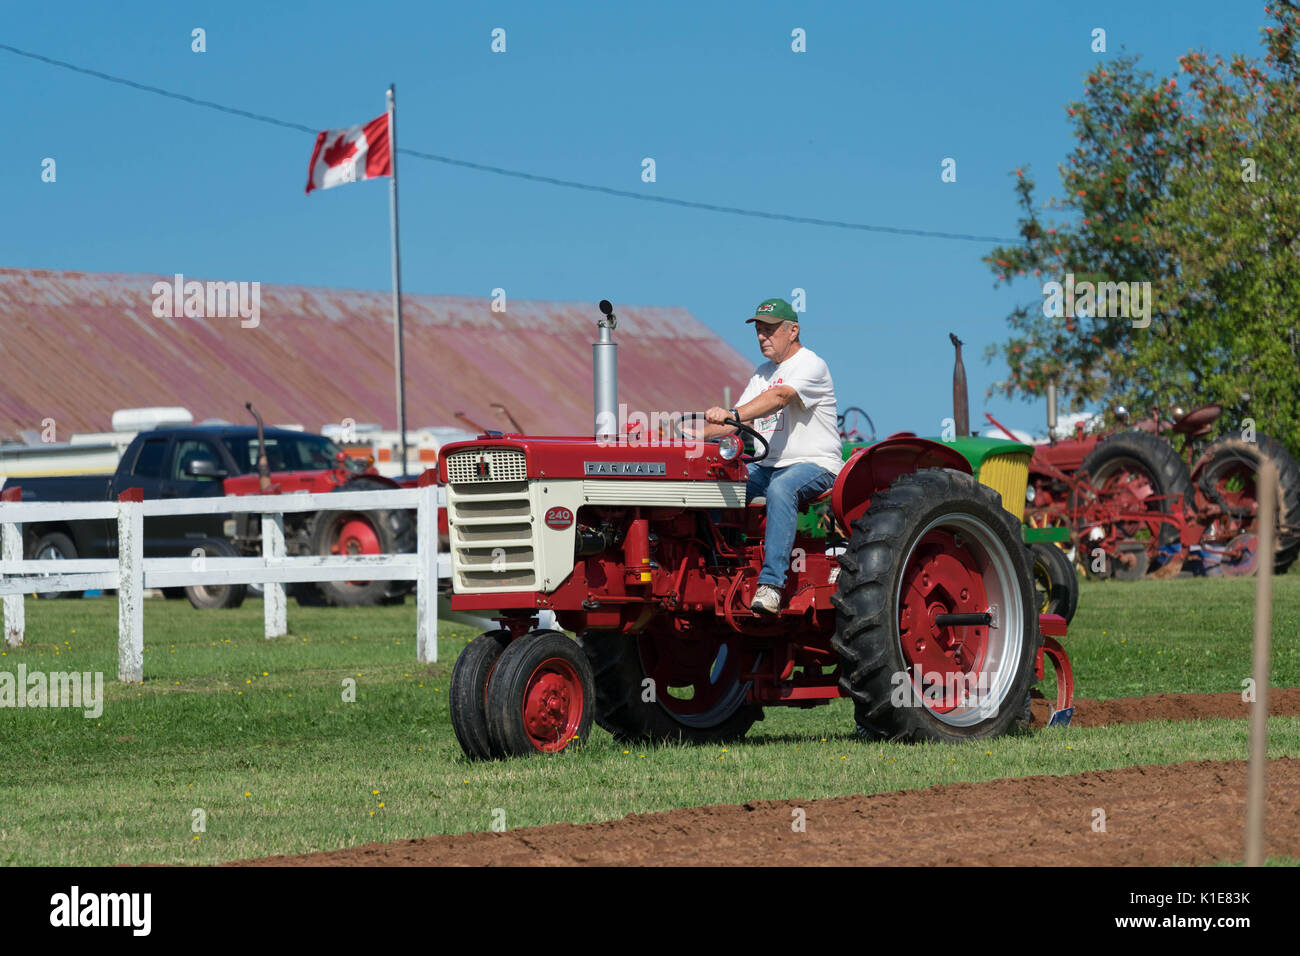 DUNDAS, PRINCE EDWARD ISLAND, CANADA - 25 Aug: Competitors plow with amtique tractors at the PEI Plowing Match and - Stock Image